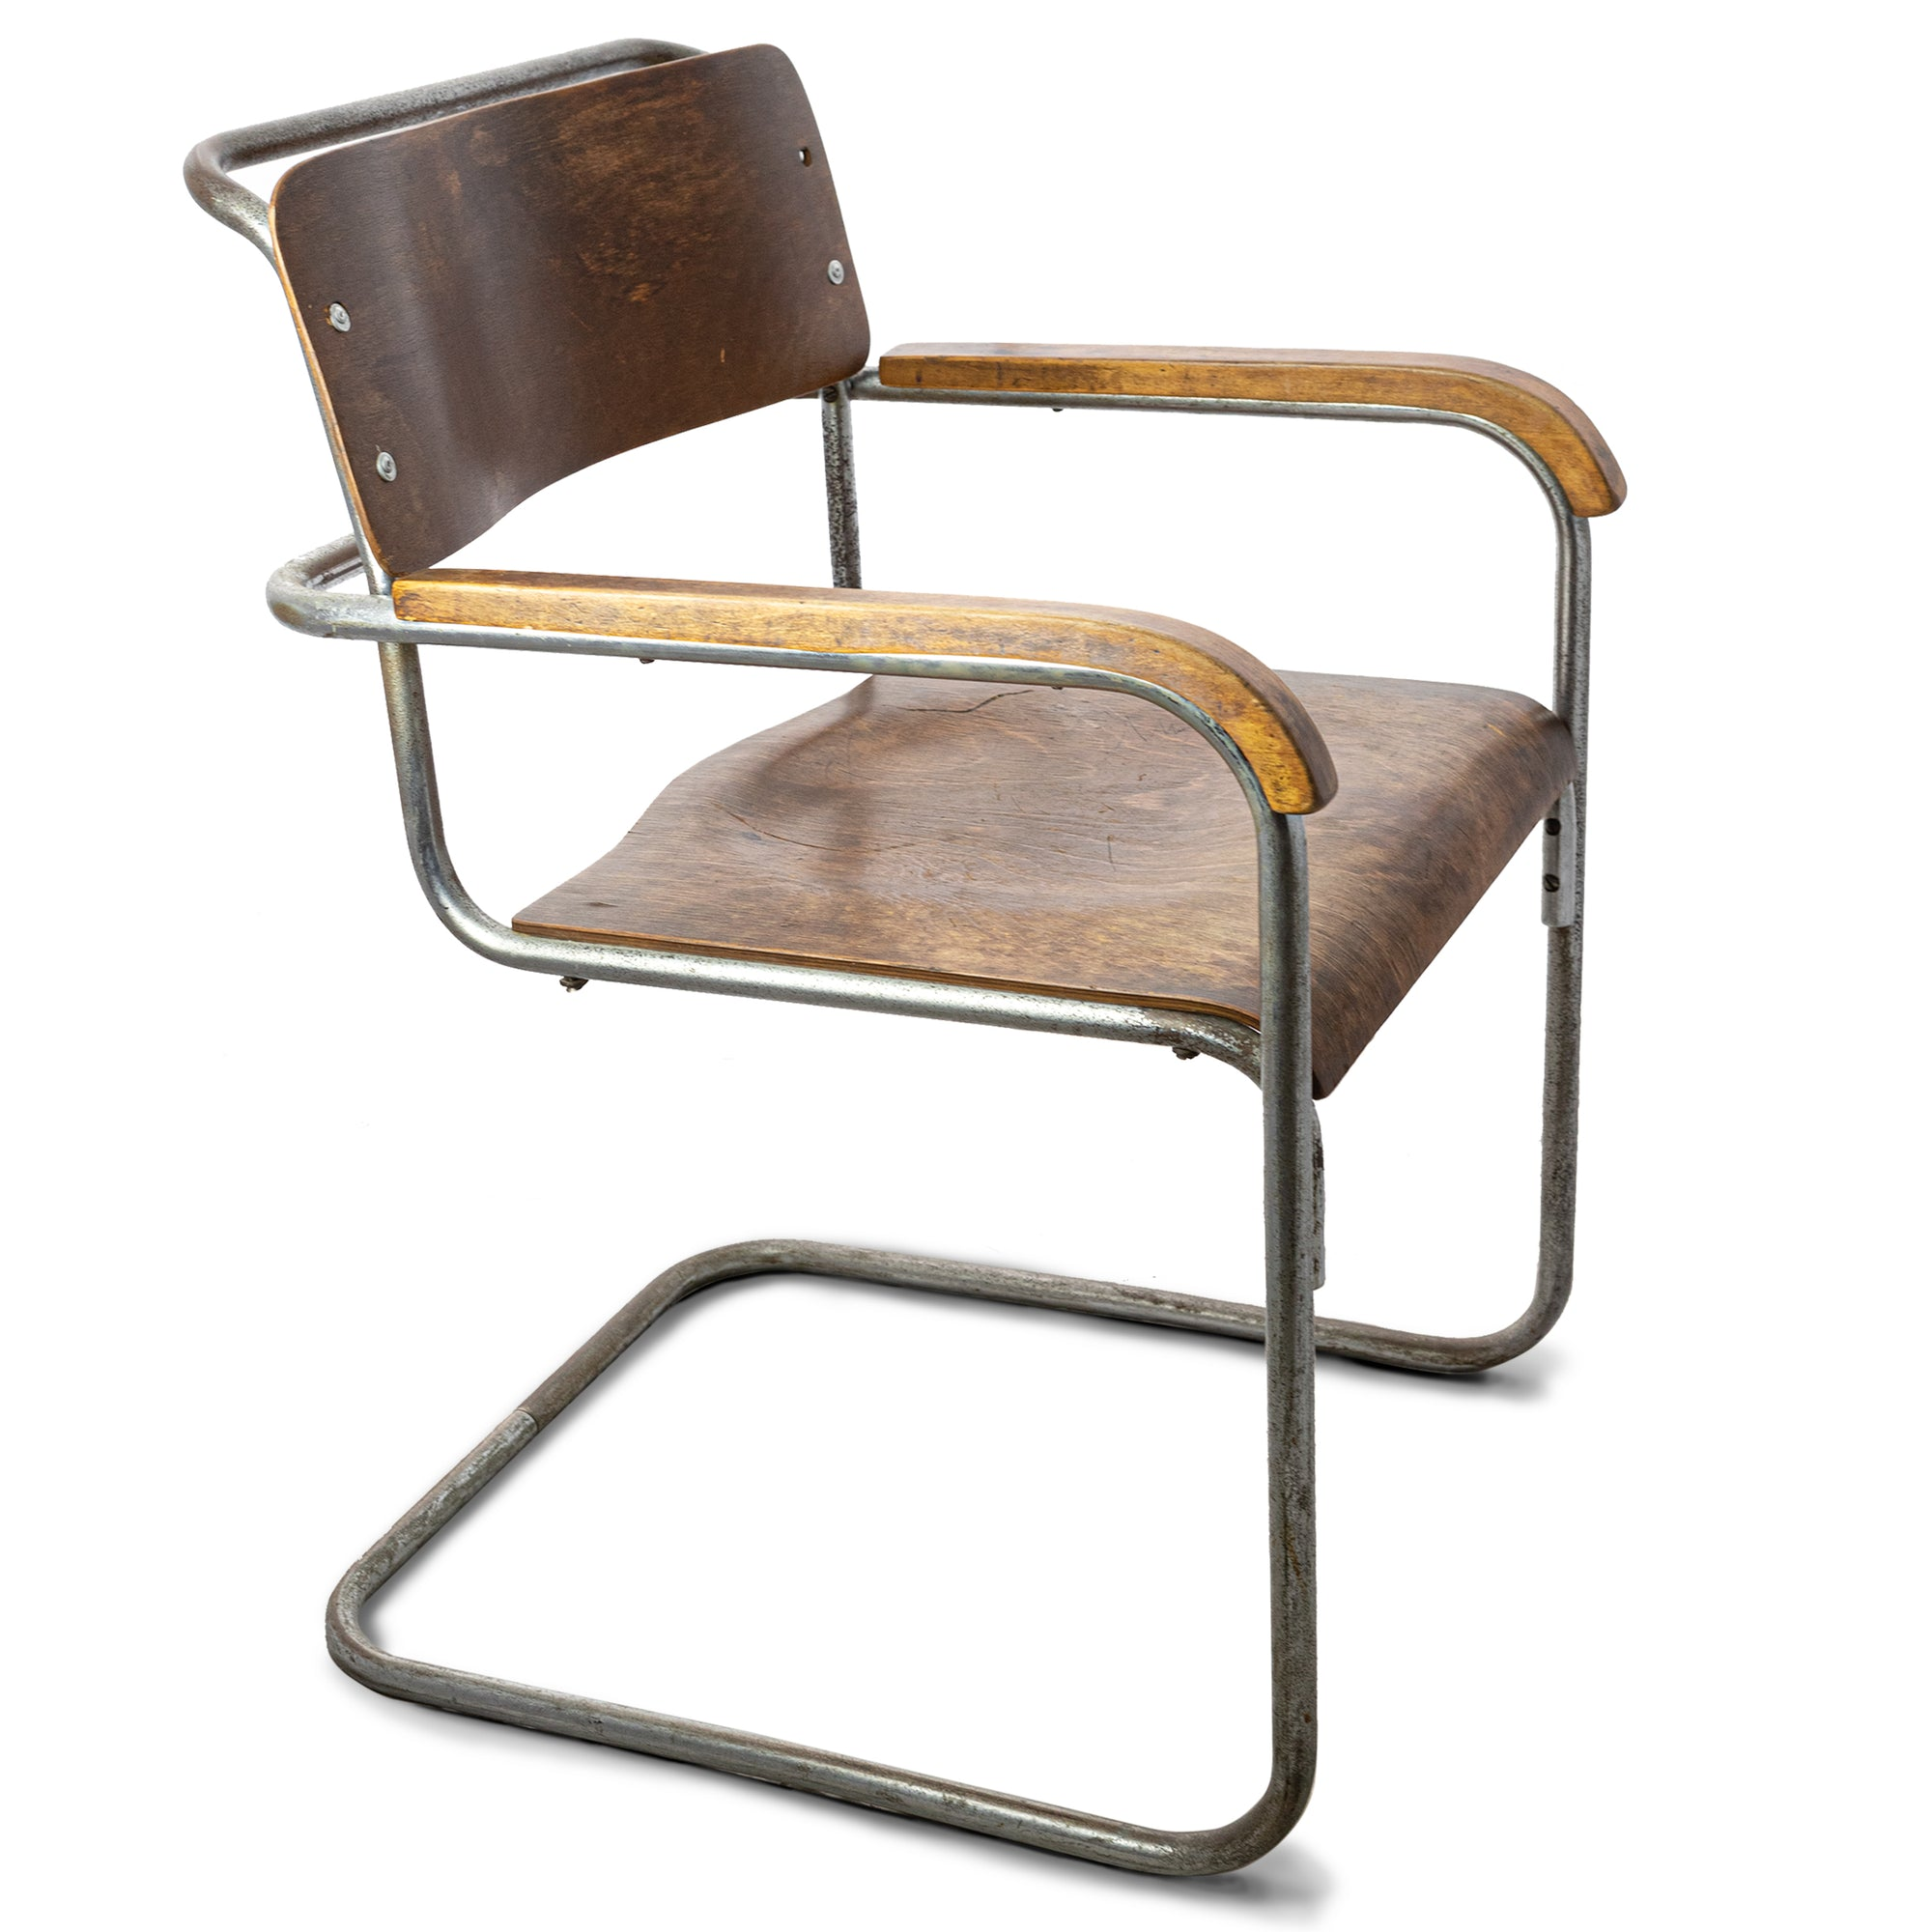 Reclaimed Bauhaus Wooden and Chrome Chair | The Architectural Forum